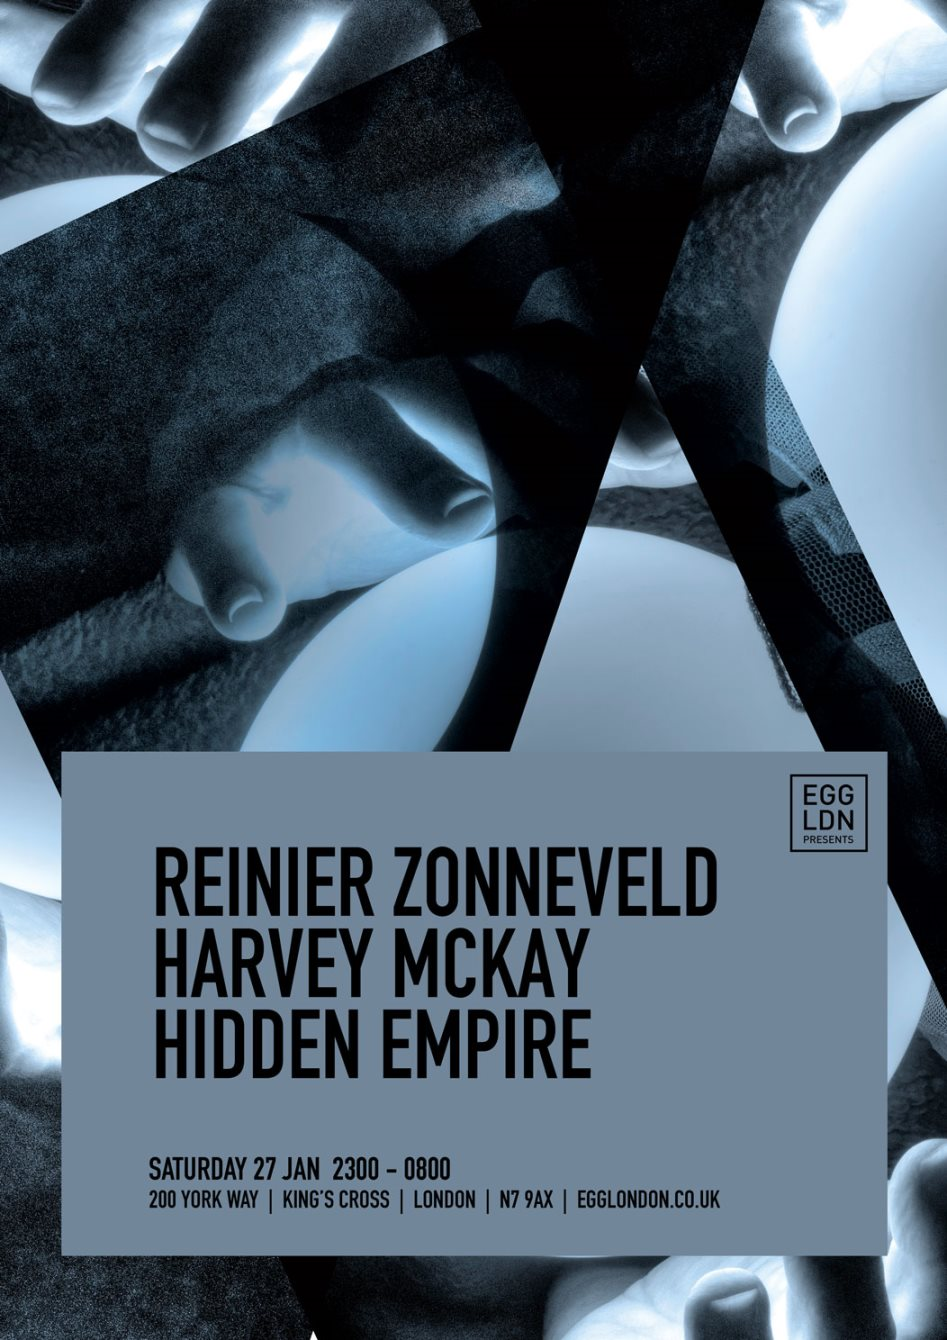 EGG LDN presents: Reinier Zonneveld, Harvey Mckay, Hidden Empire